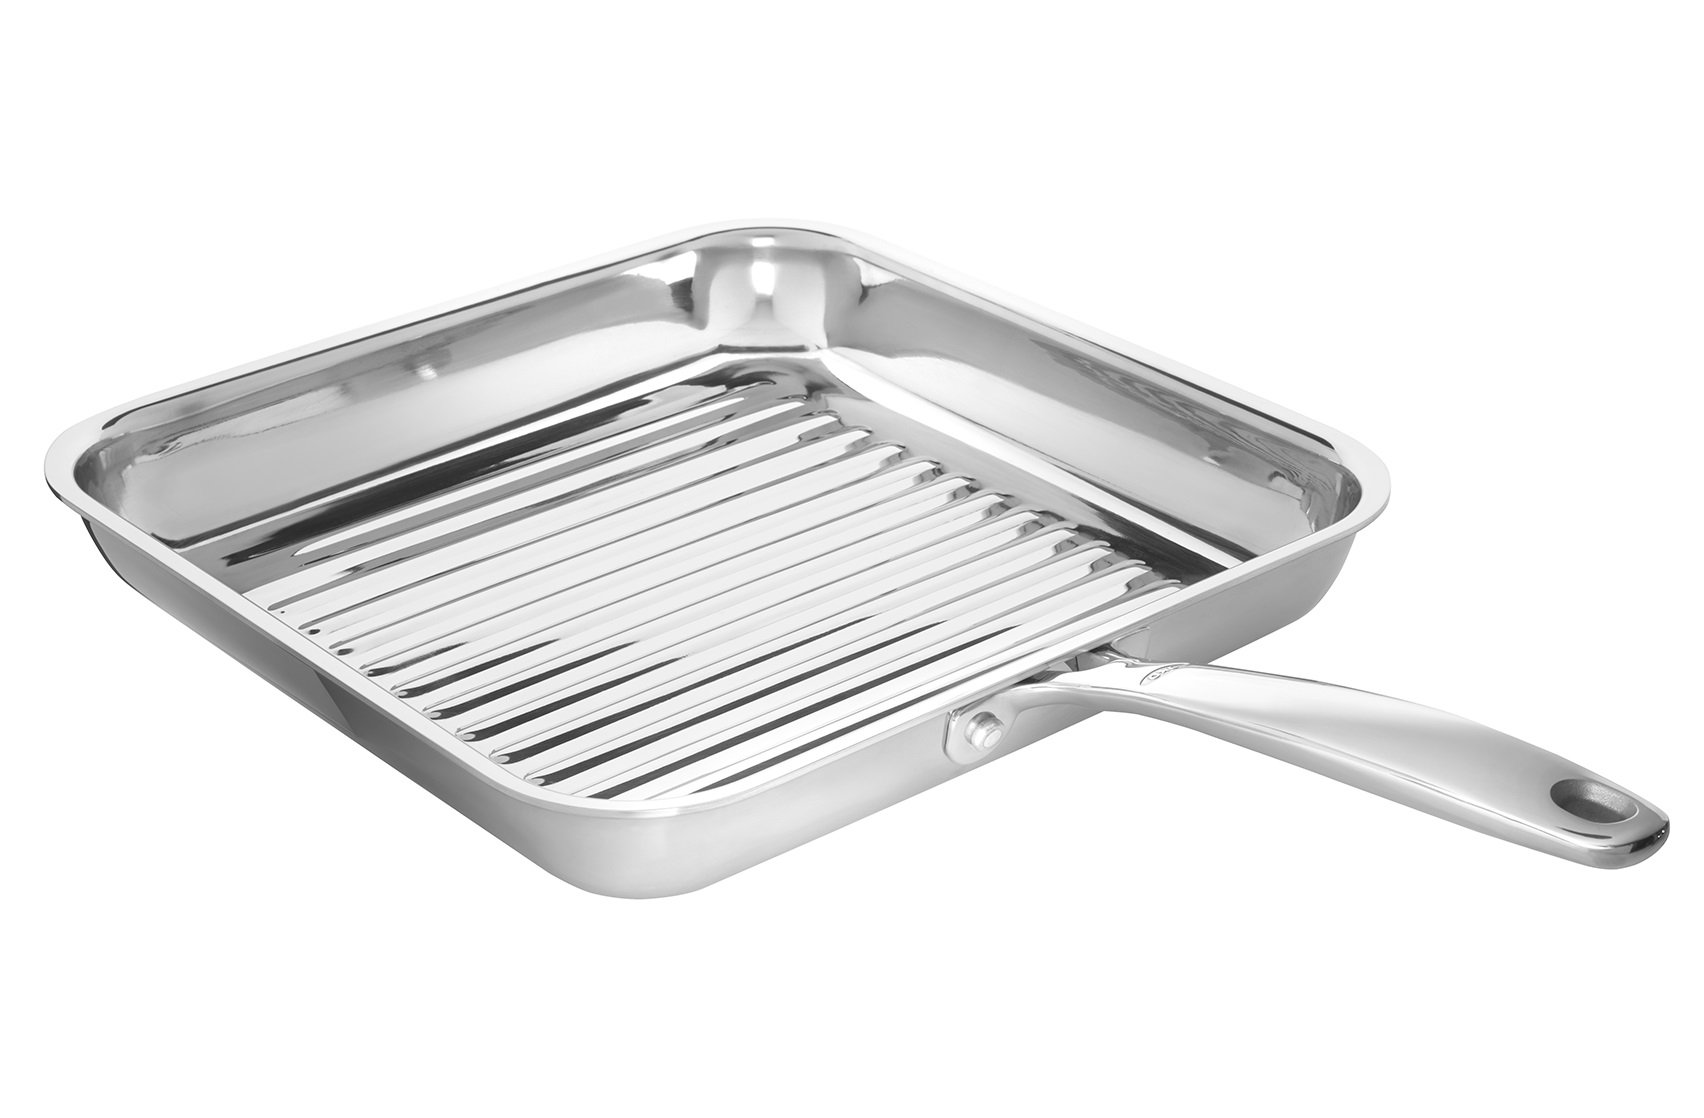 OXO Good Grips Tri-Ply Stainless Steel Pro 11'' Square Grillpan